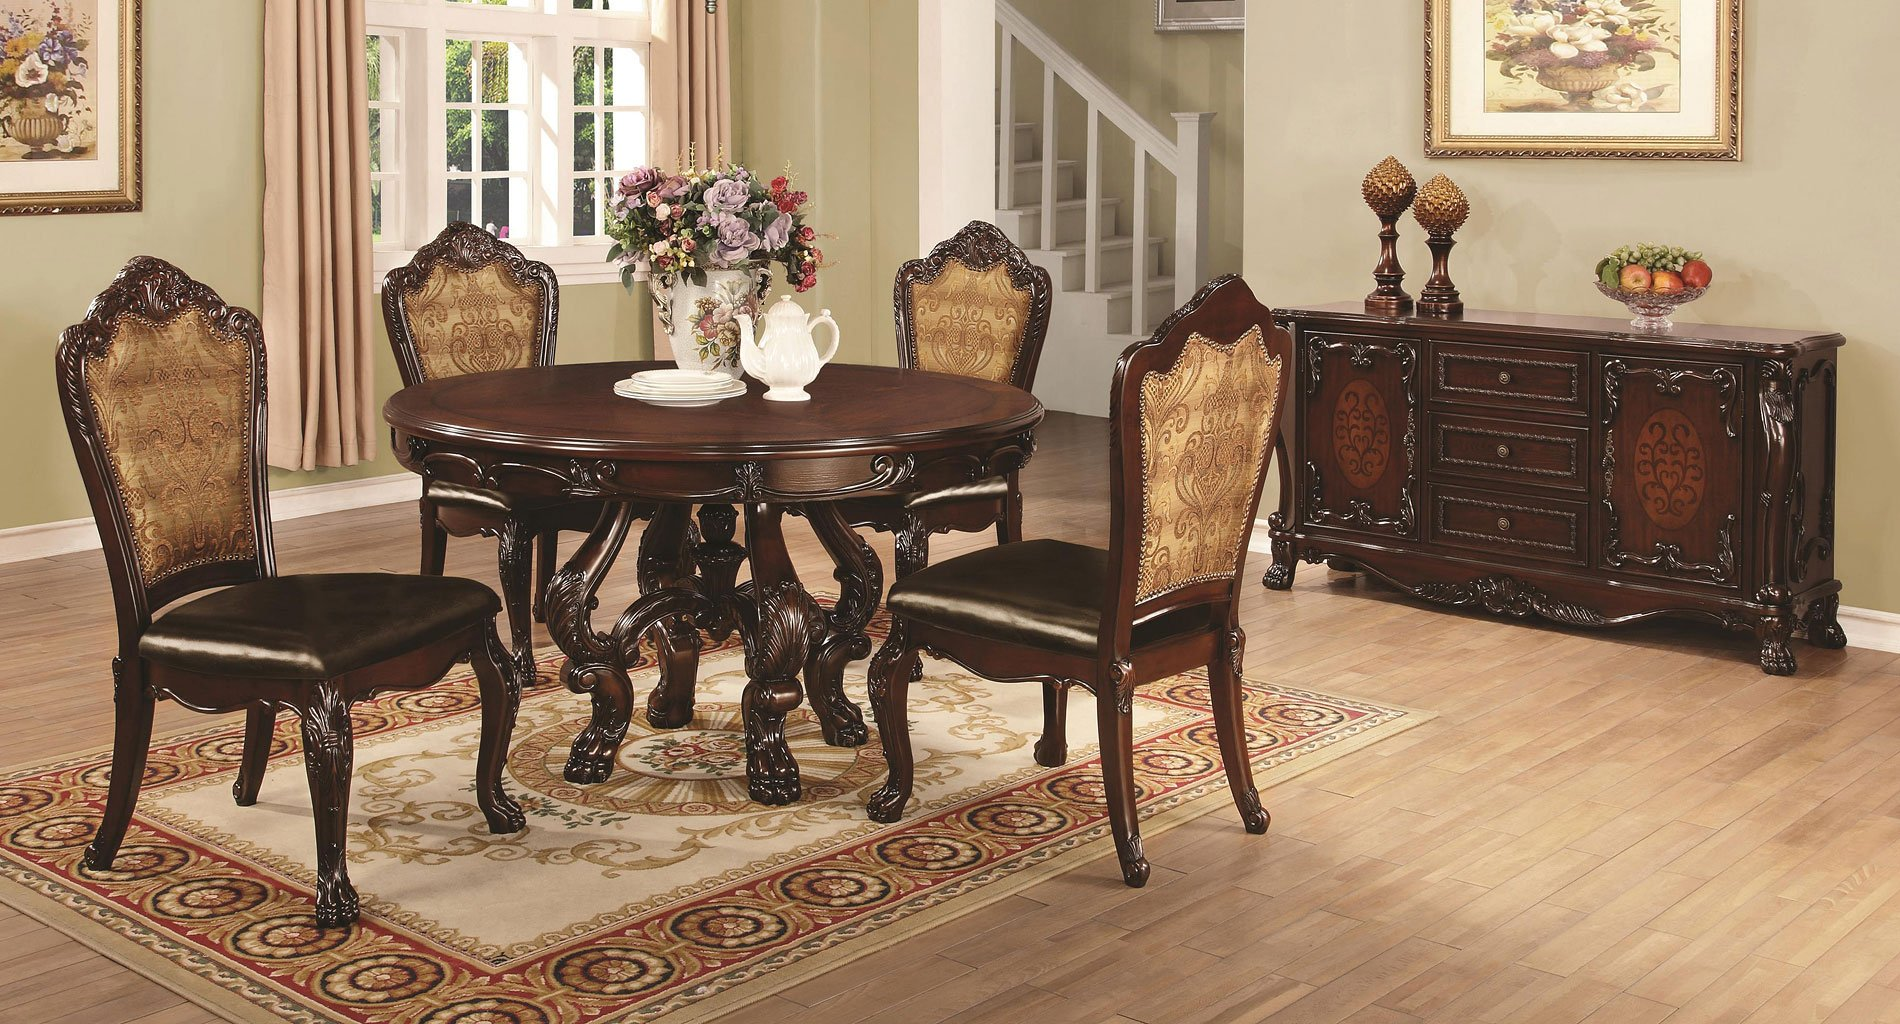 Benbrook round dining room set casual dining sets for Casual kitchen dining